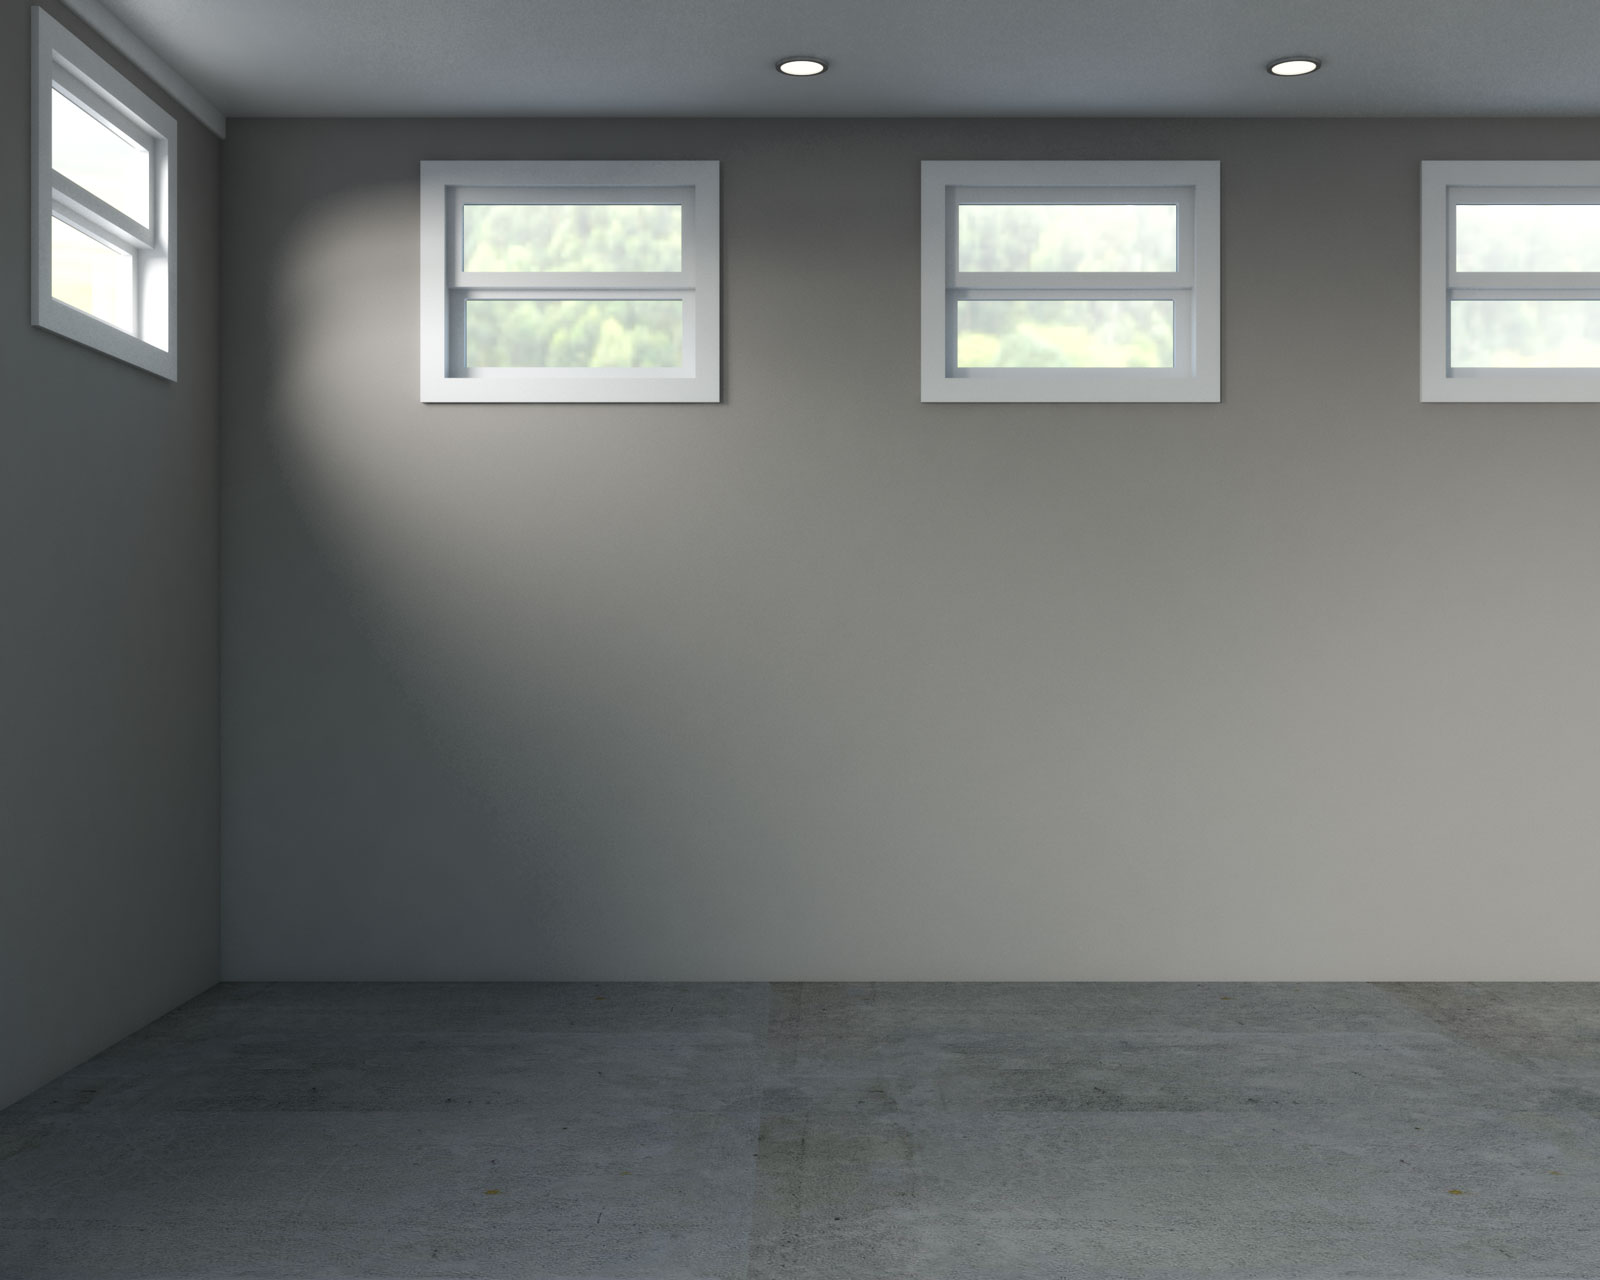 Basement with grayish brown walls and concrete flooring